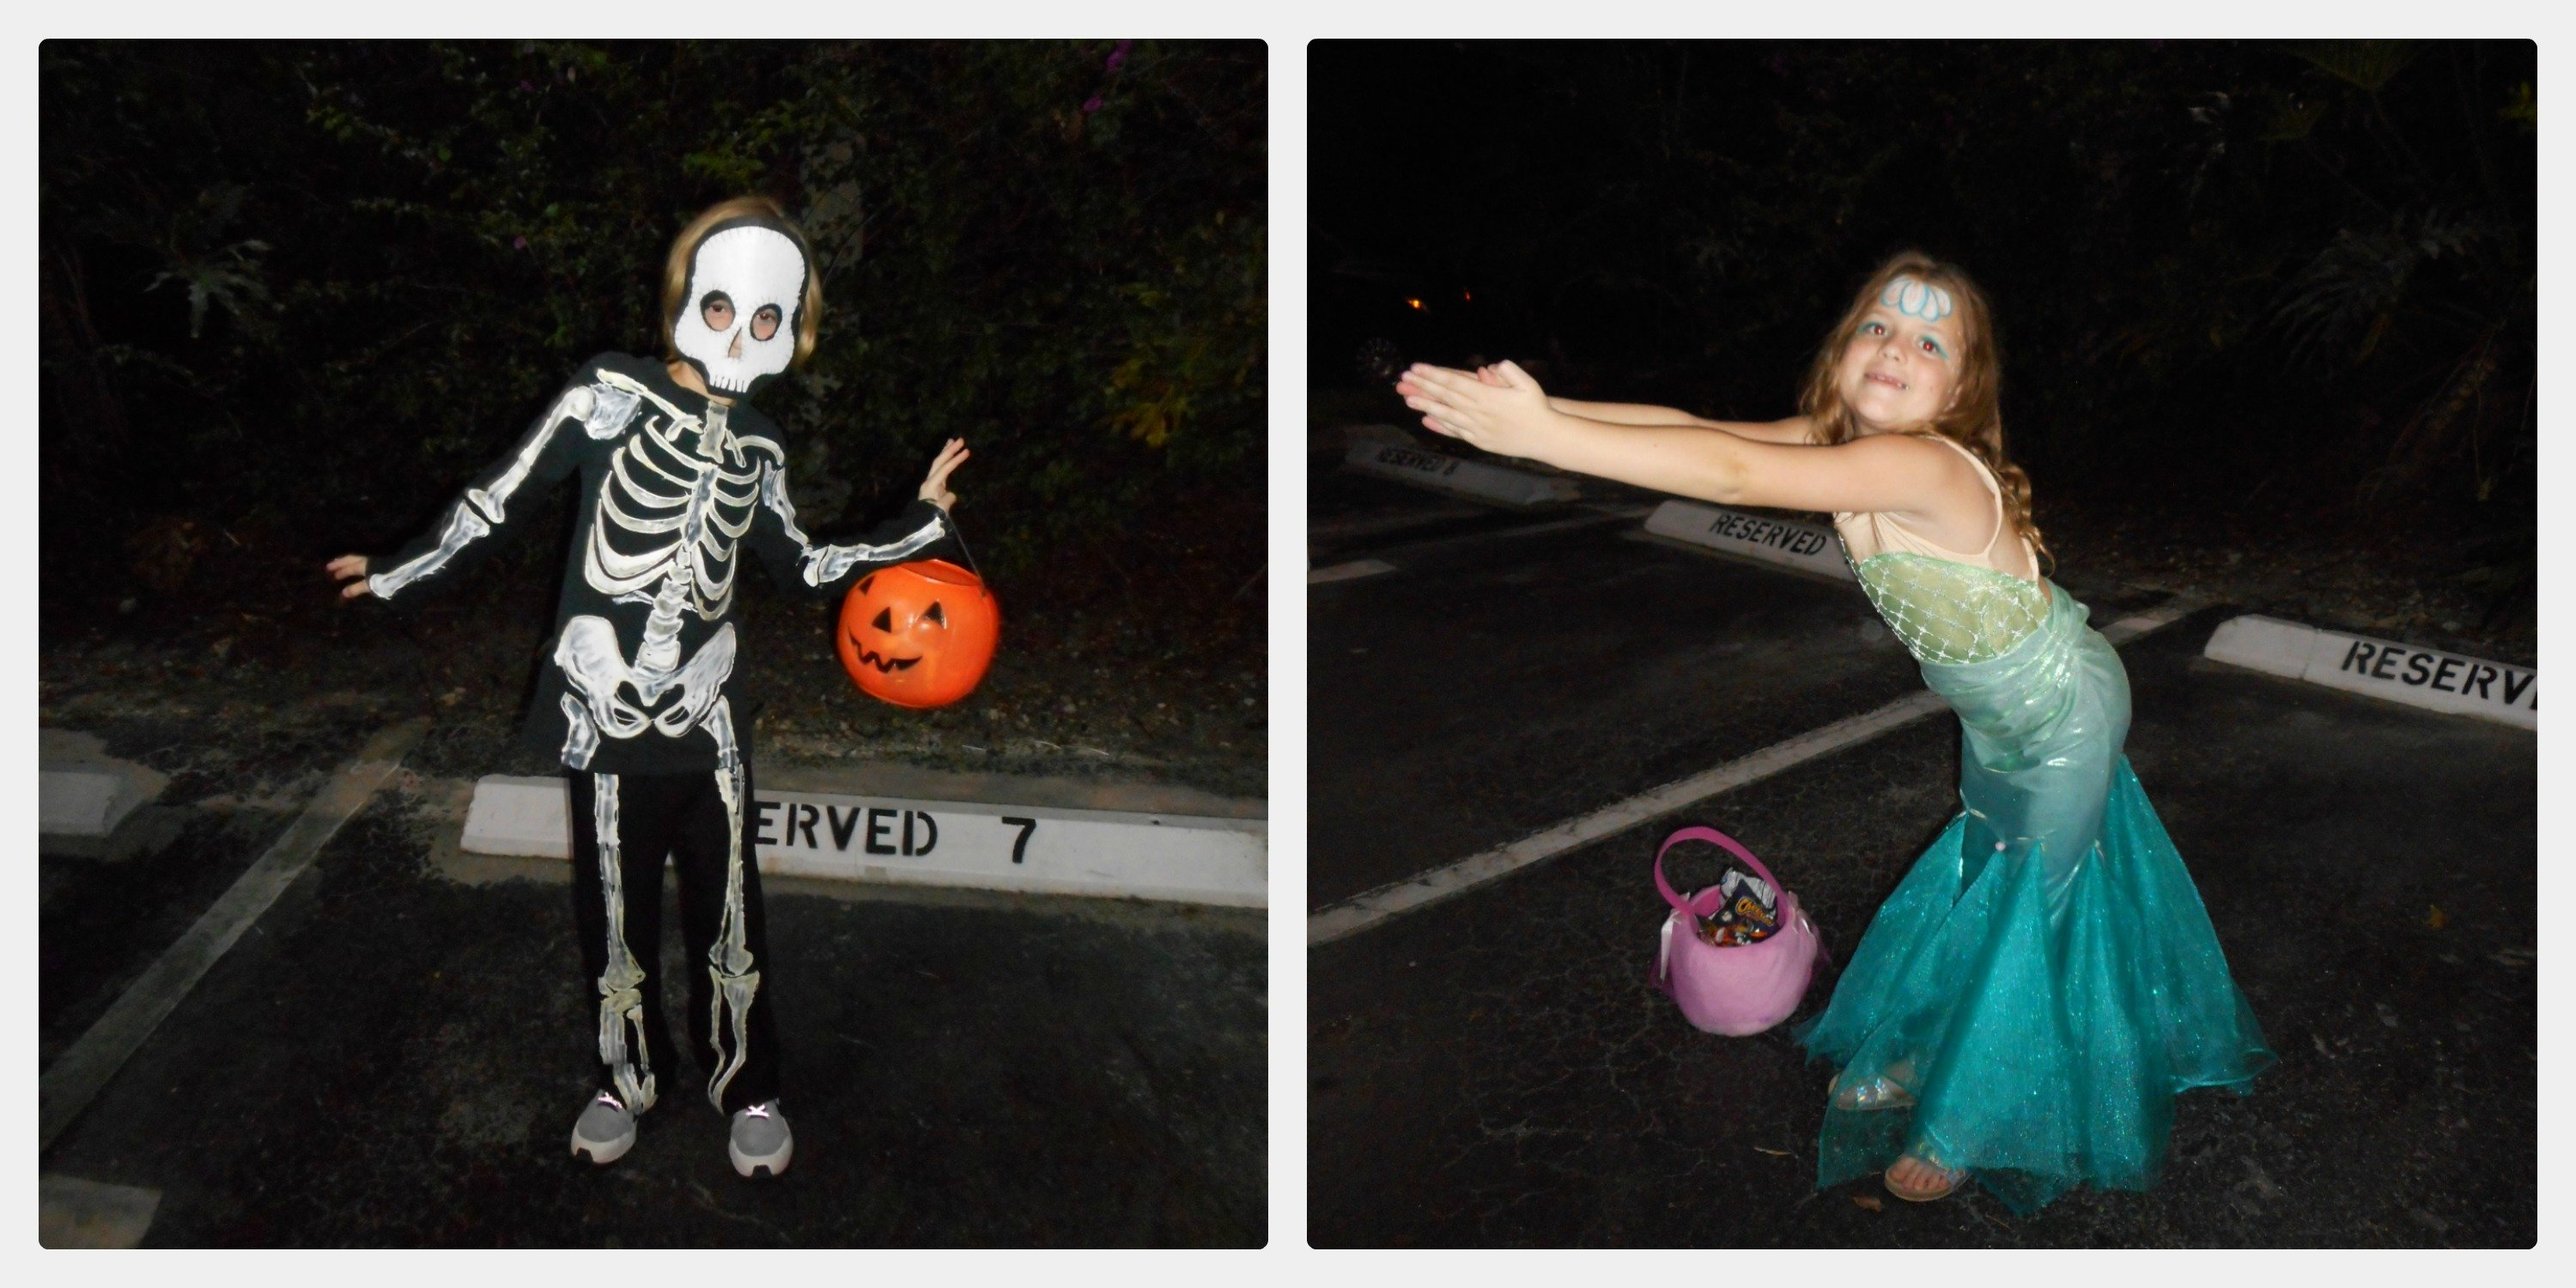 Halloween 2017- Greek Gods, Mermaids and Skeletons!